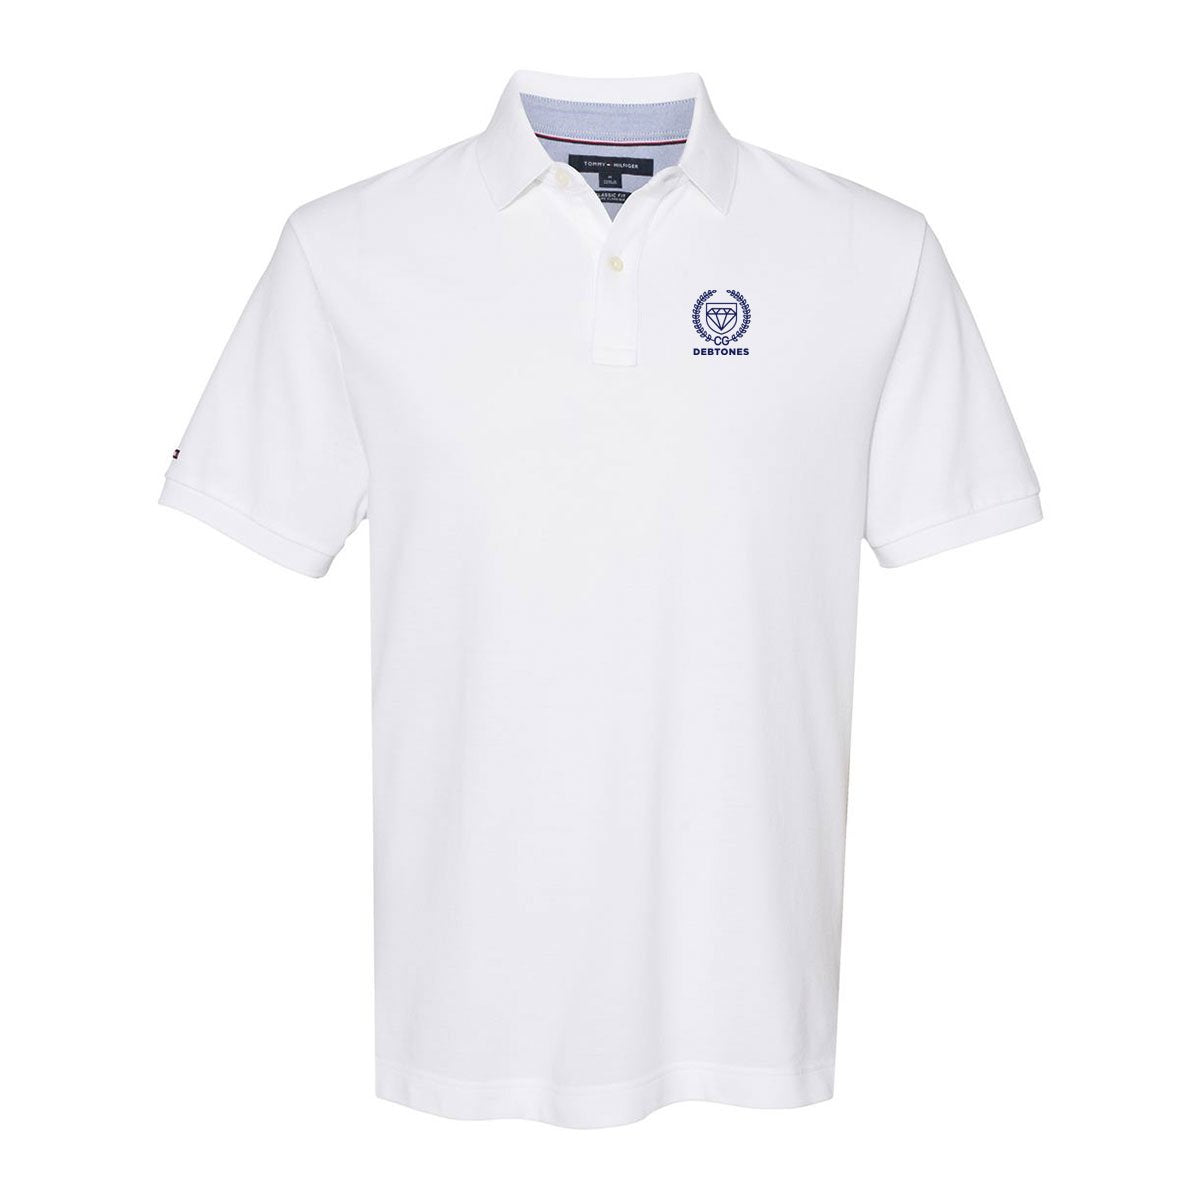 Debtones White Tommy Hilfiger Polo